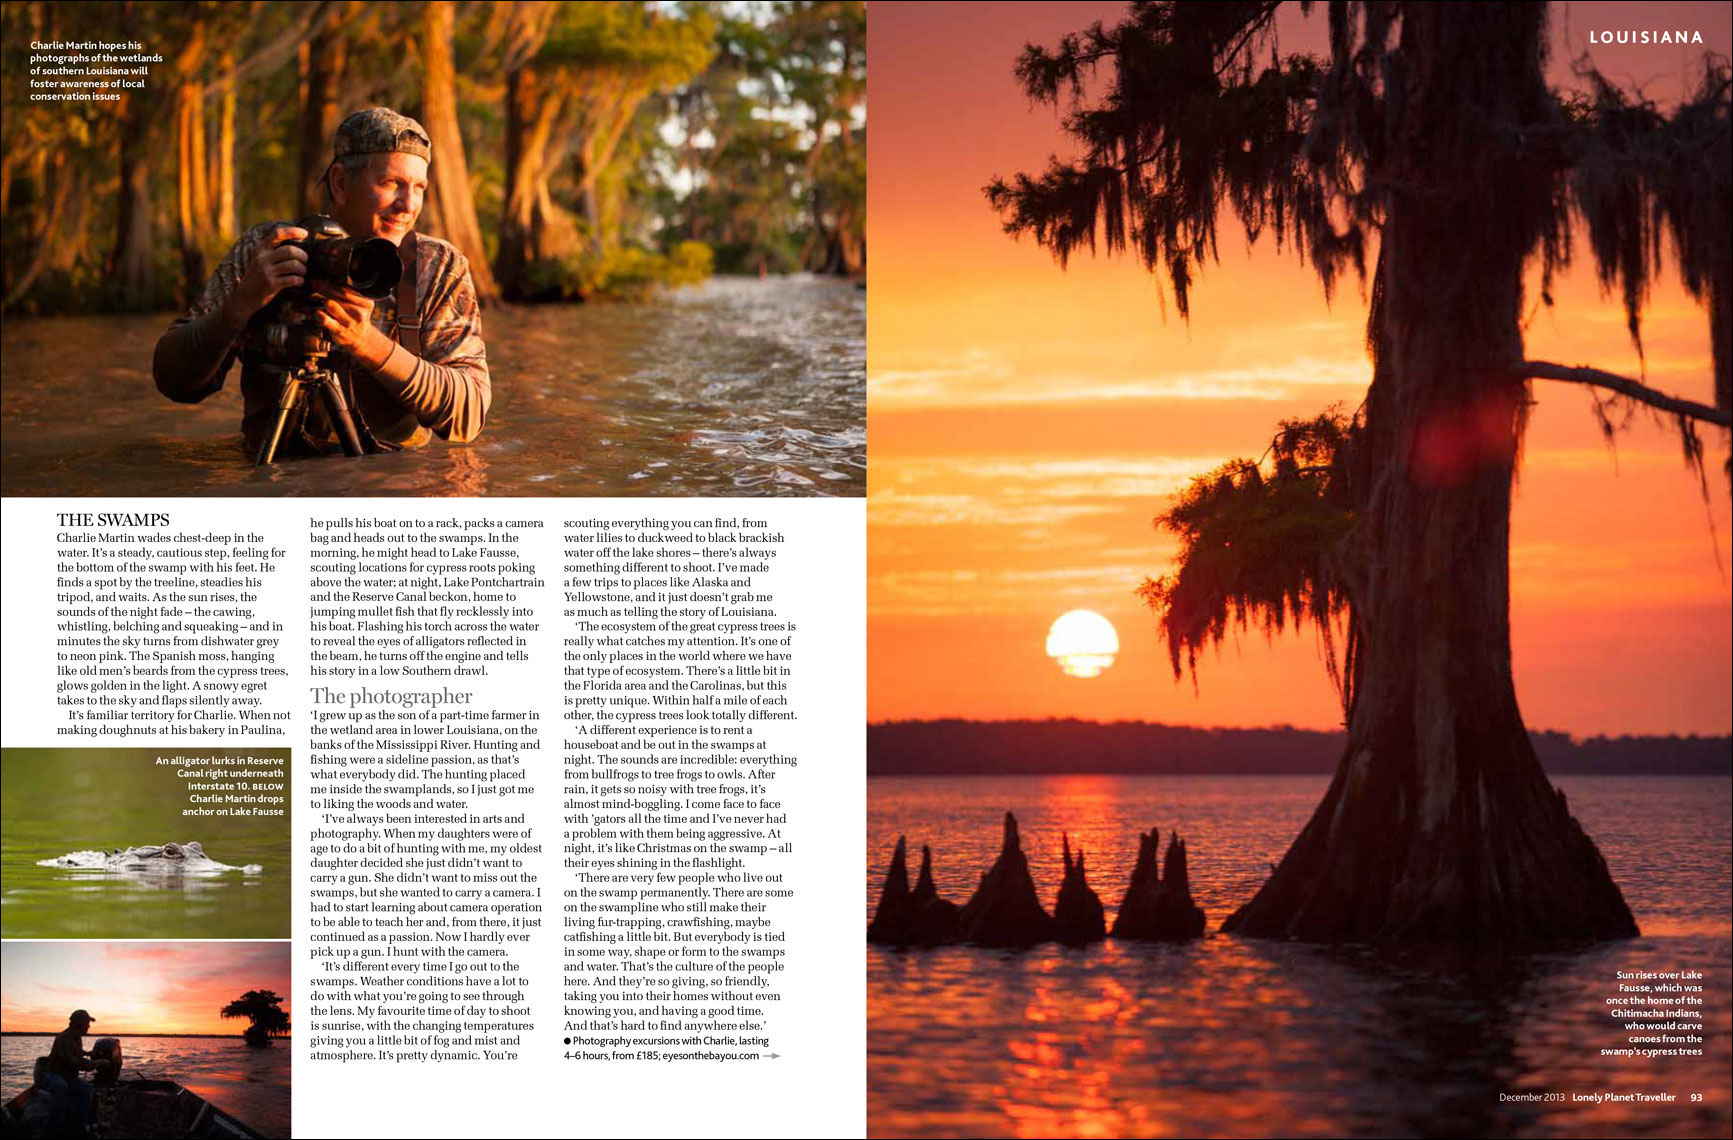 Kris_Davidson_Artist_Photographer_Lonely_Planet_Louisiana_5